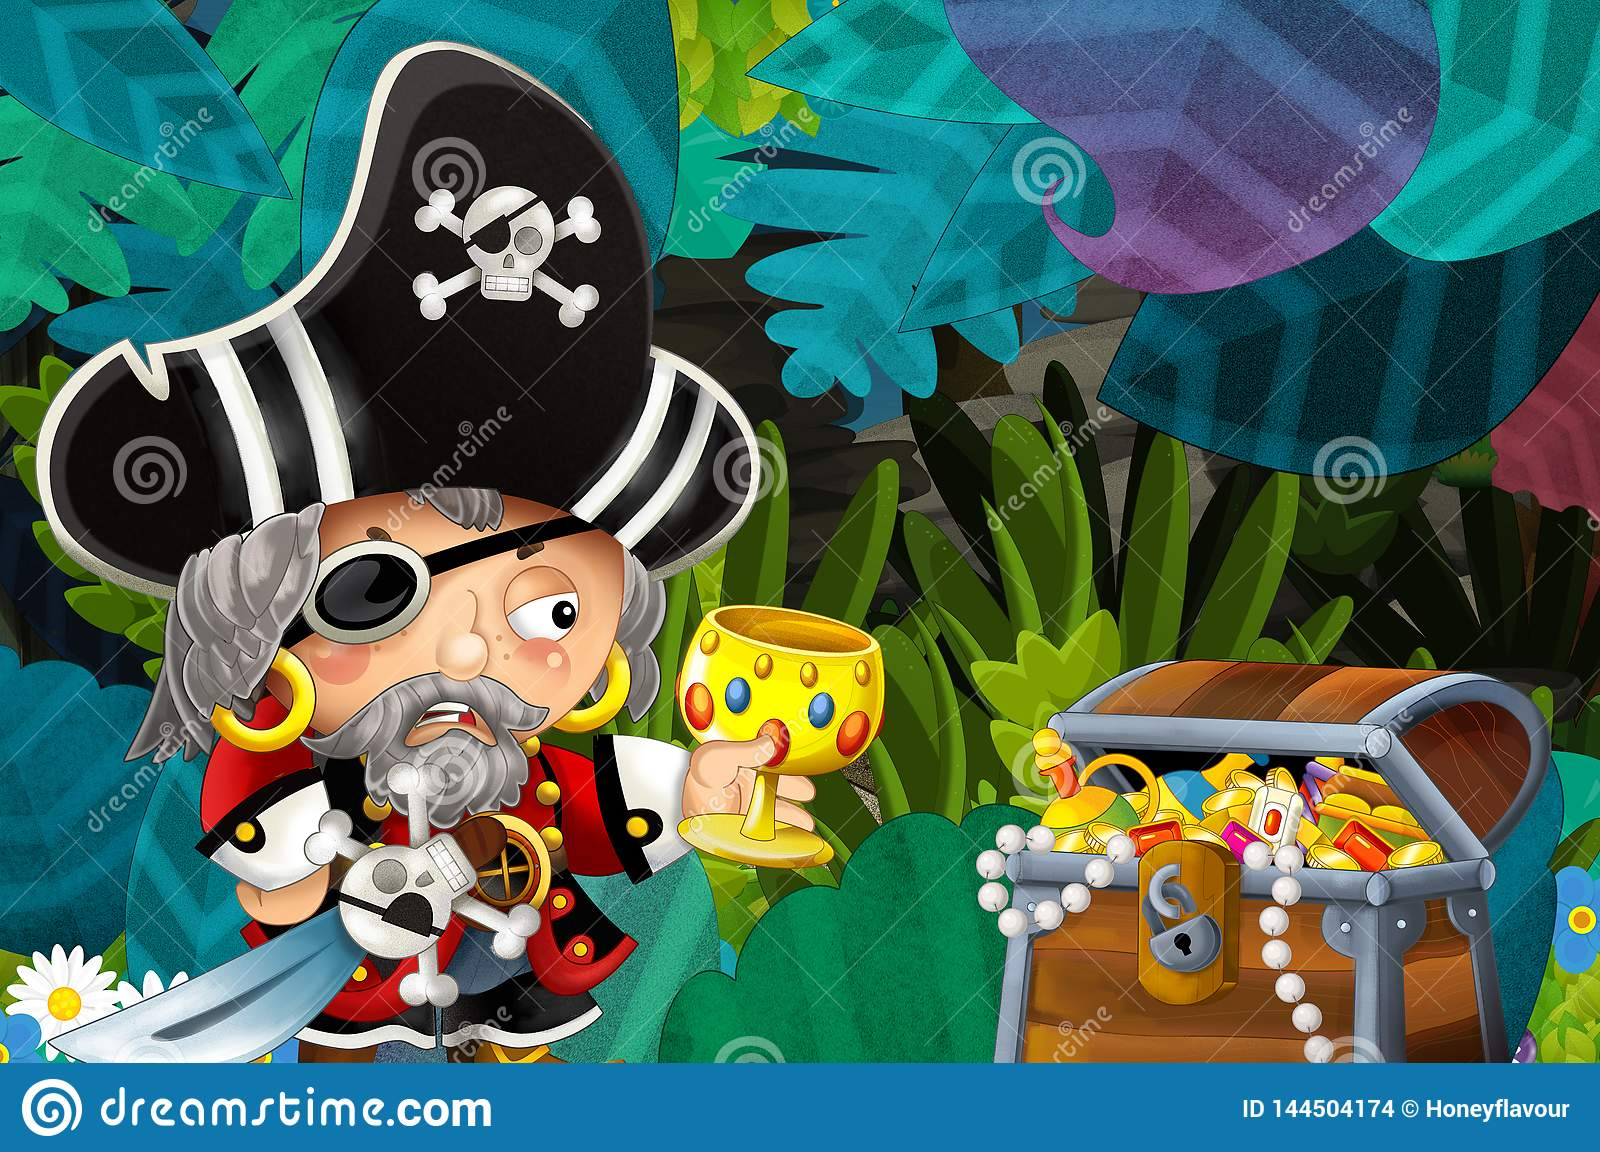 Cartoon Scene With Pirate In The Jungle Holding Royal Crown With Treasure Stock Illustration Illustration Of Exotic Design 144504174 The crown is simply a brilliant piece of television. dreamstime com